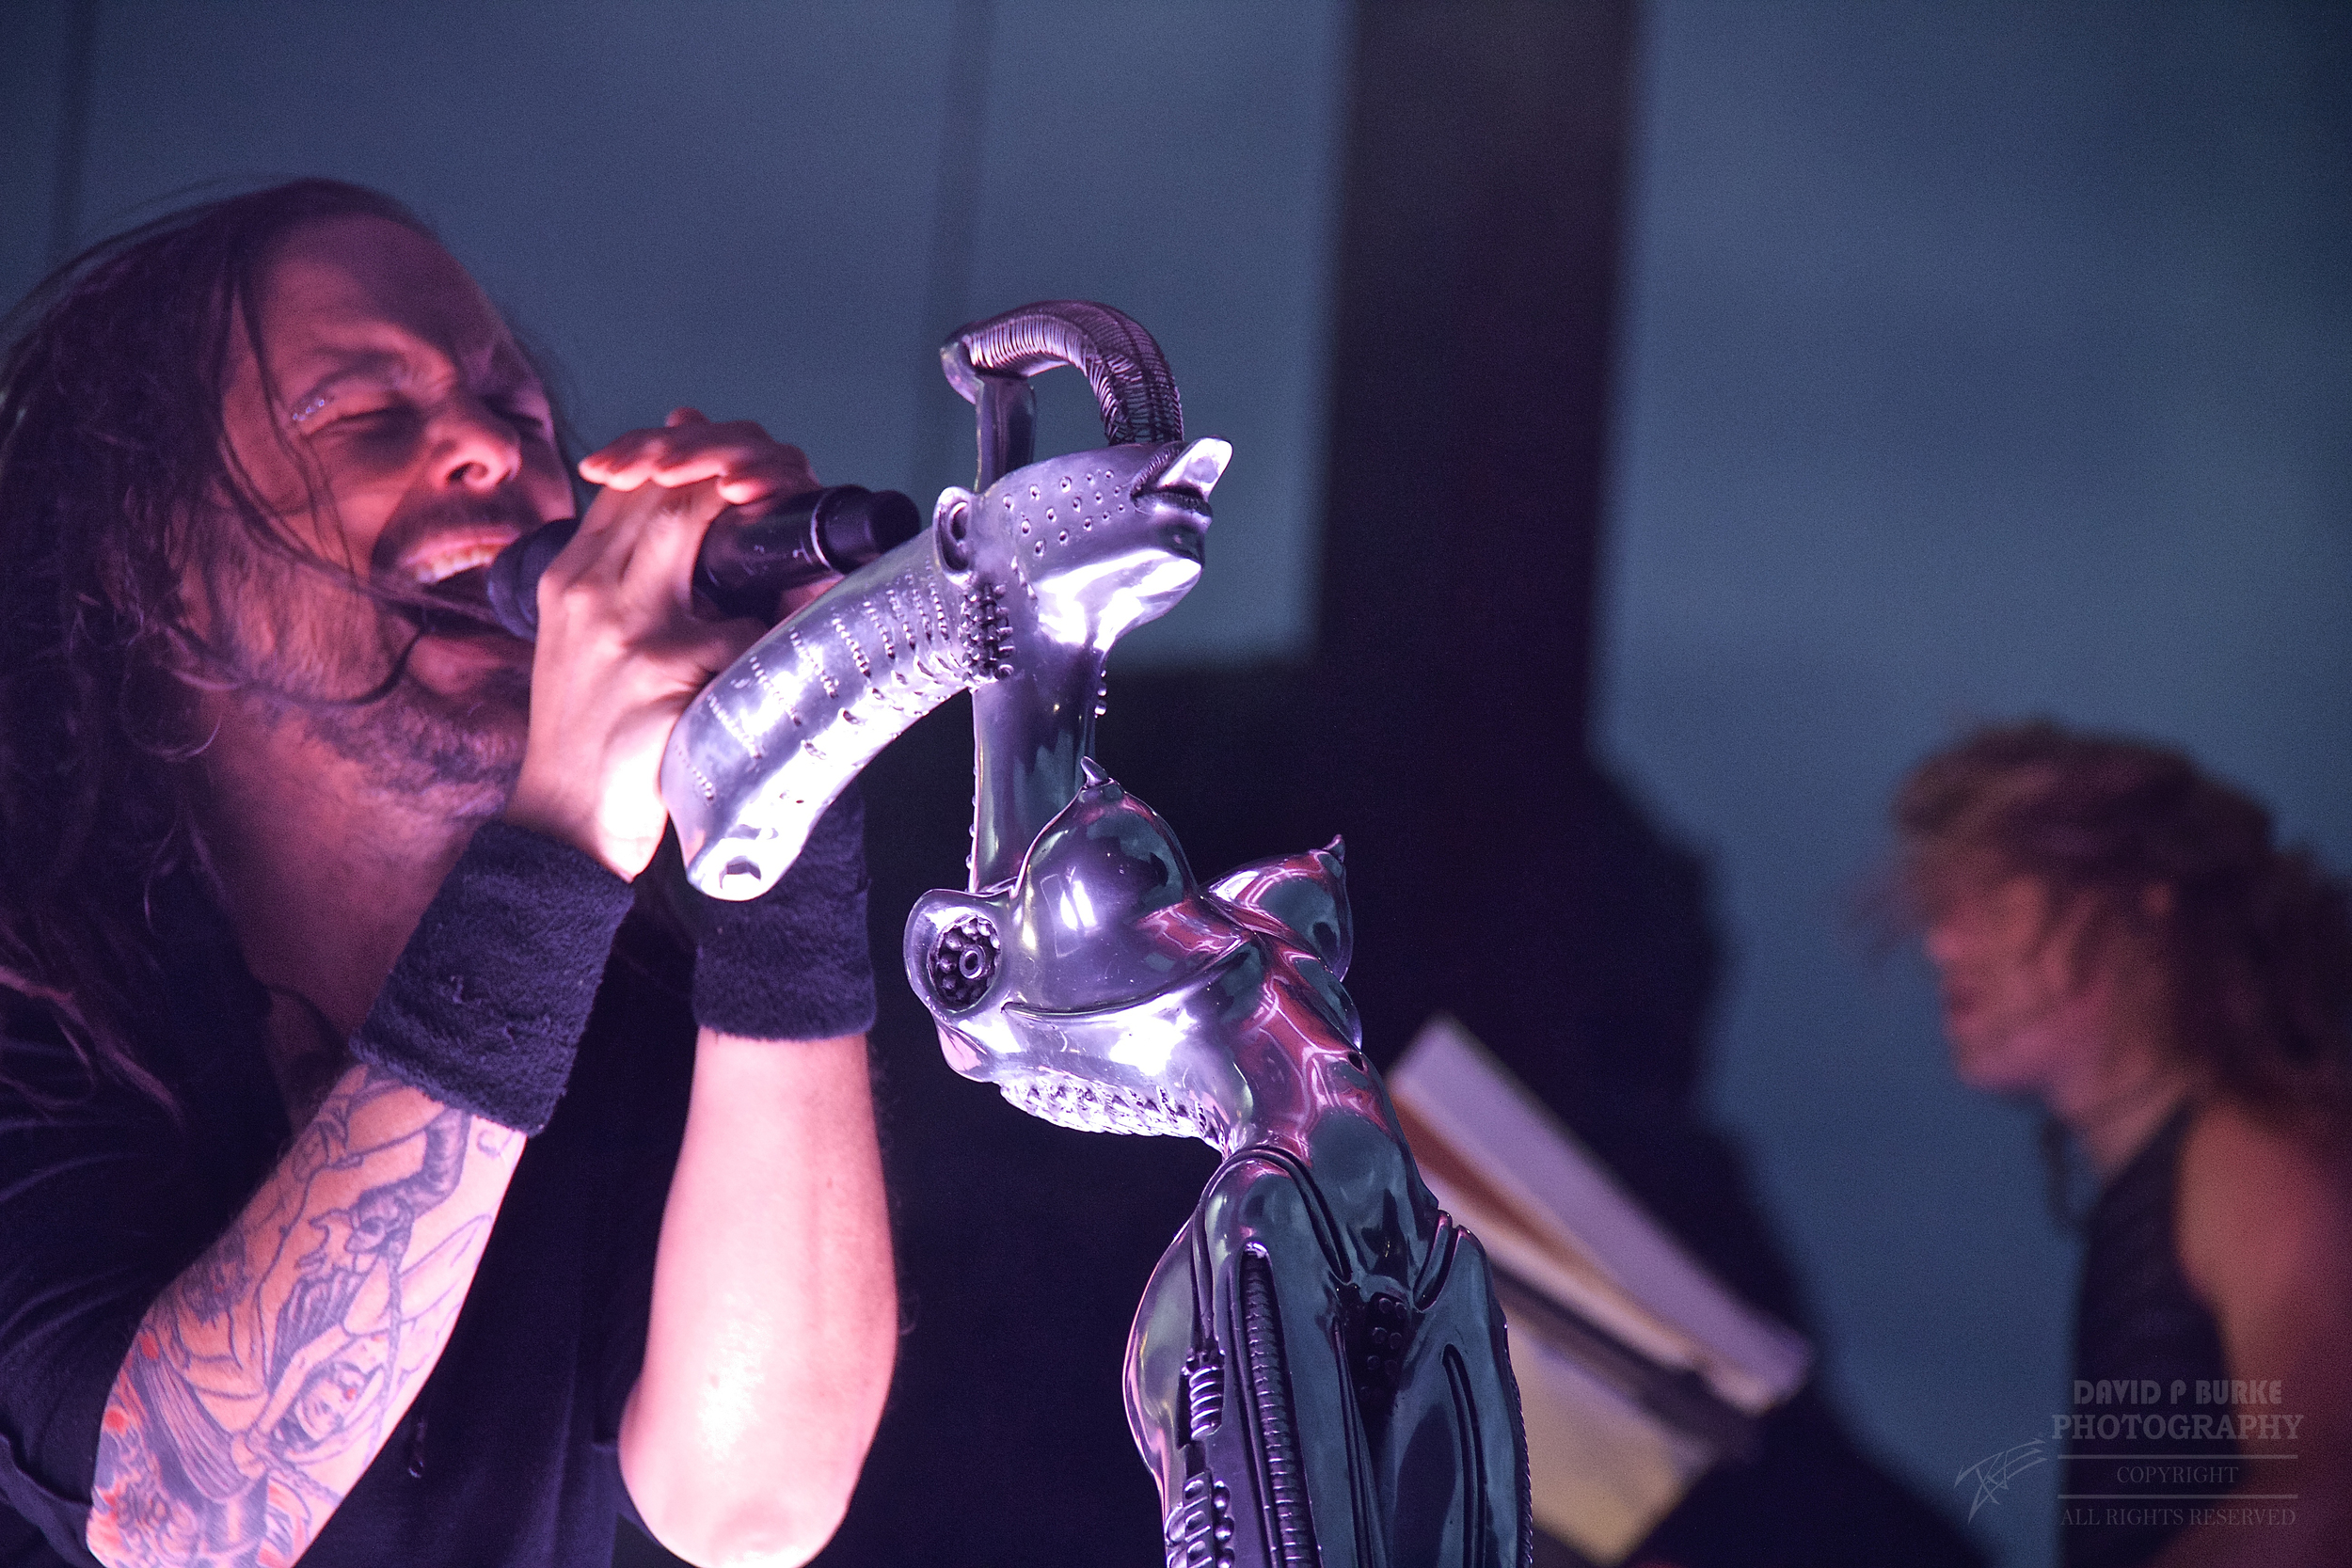 Jonathan Davis of KoRn with his awesome mic stand. Can you guess who designed it? (Photo Credit: David Burke)